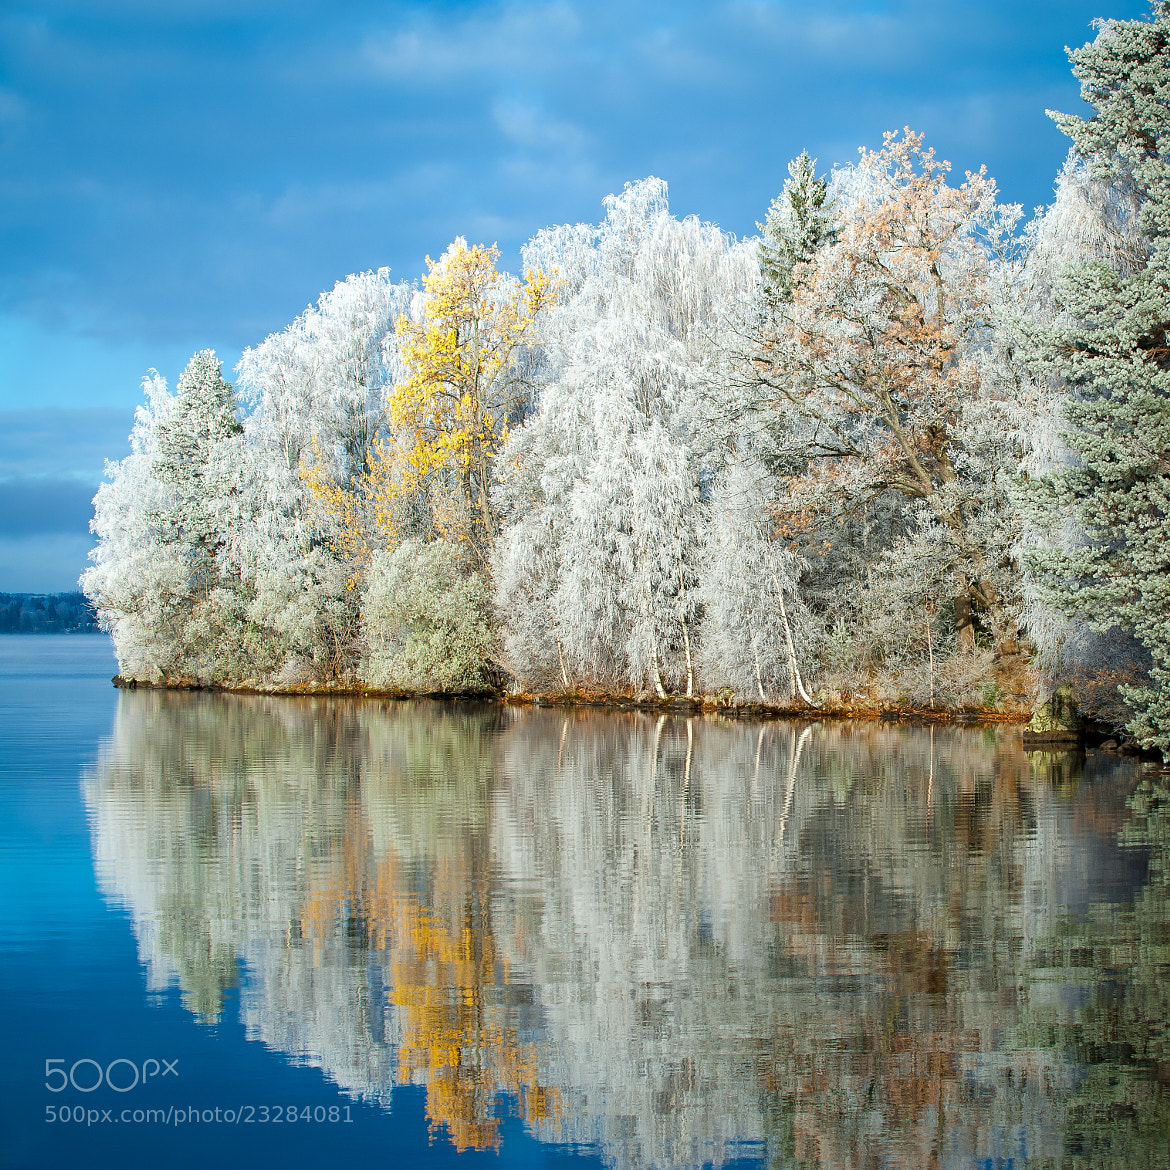 Photograph Frost and Reflections by Ari Salmela on 500px